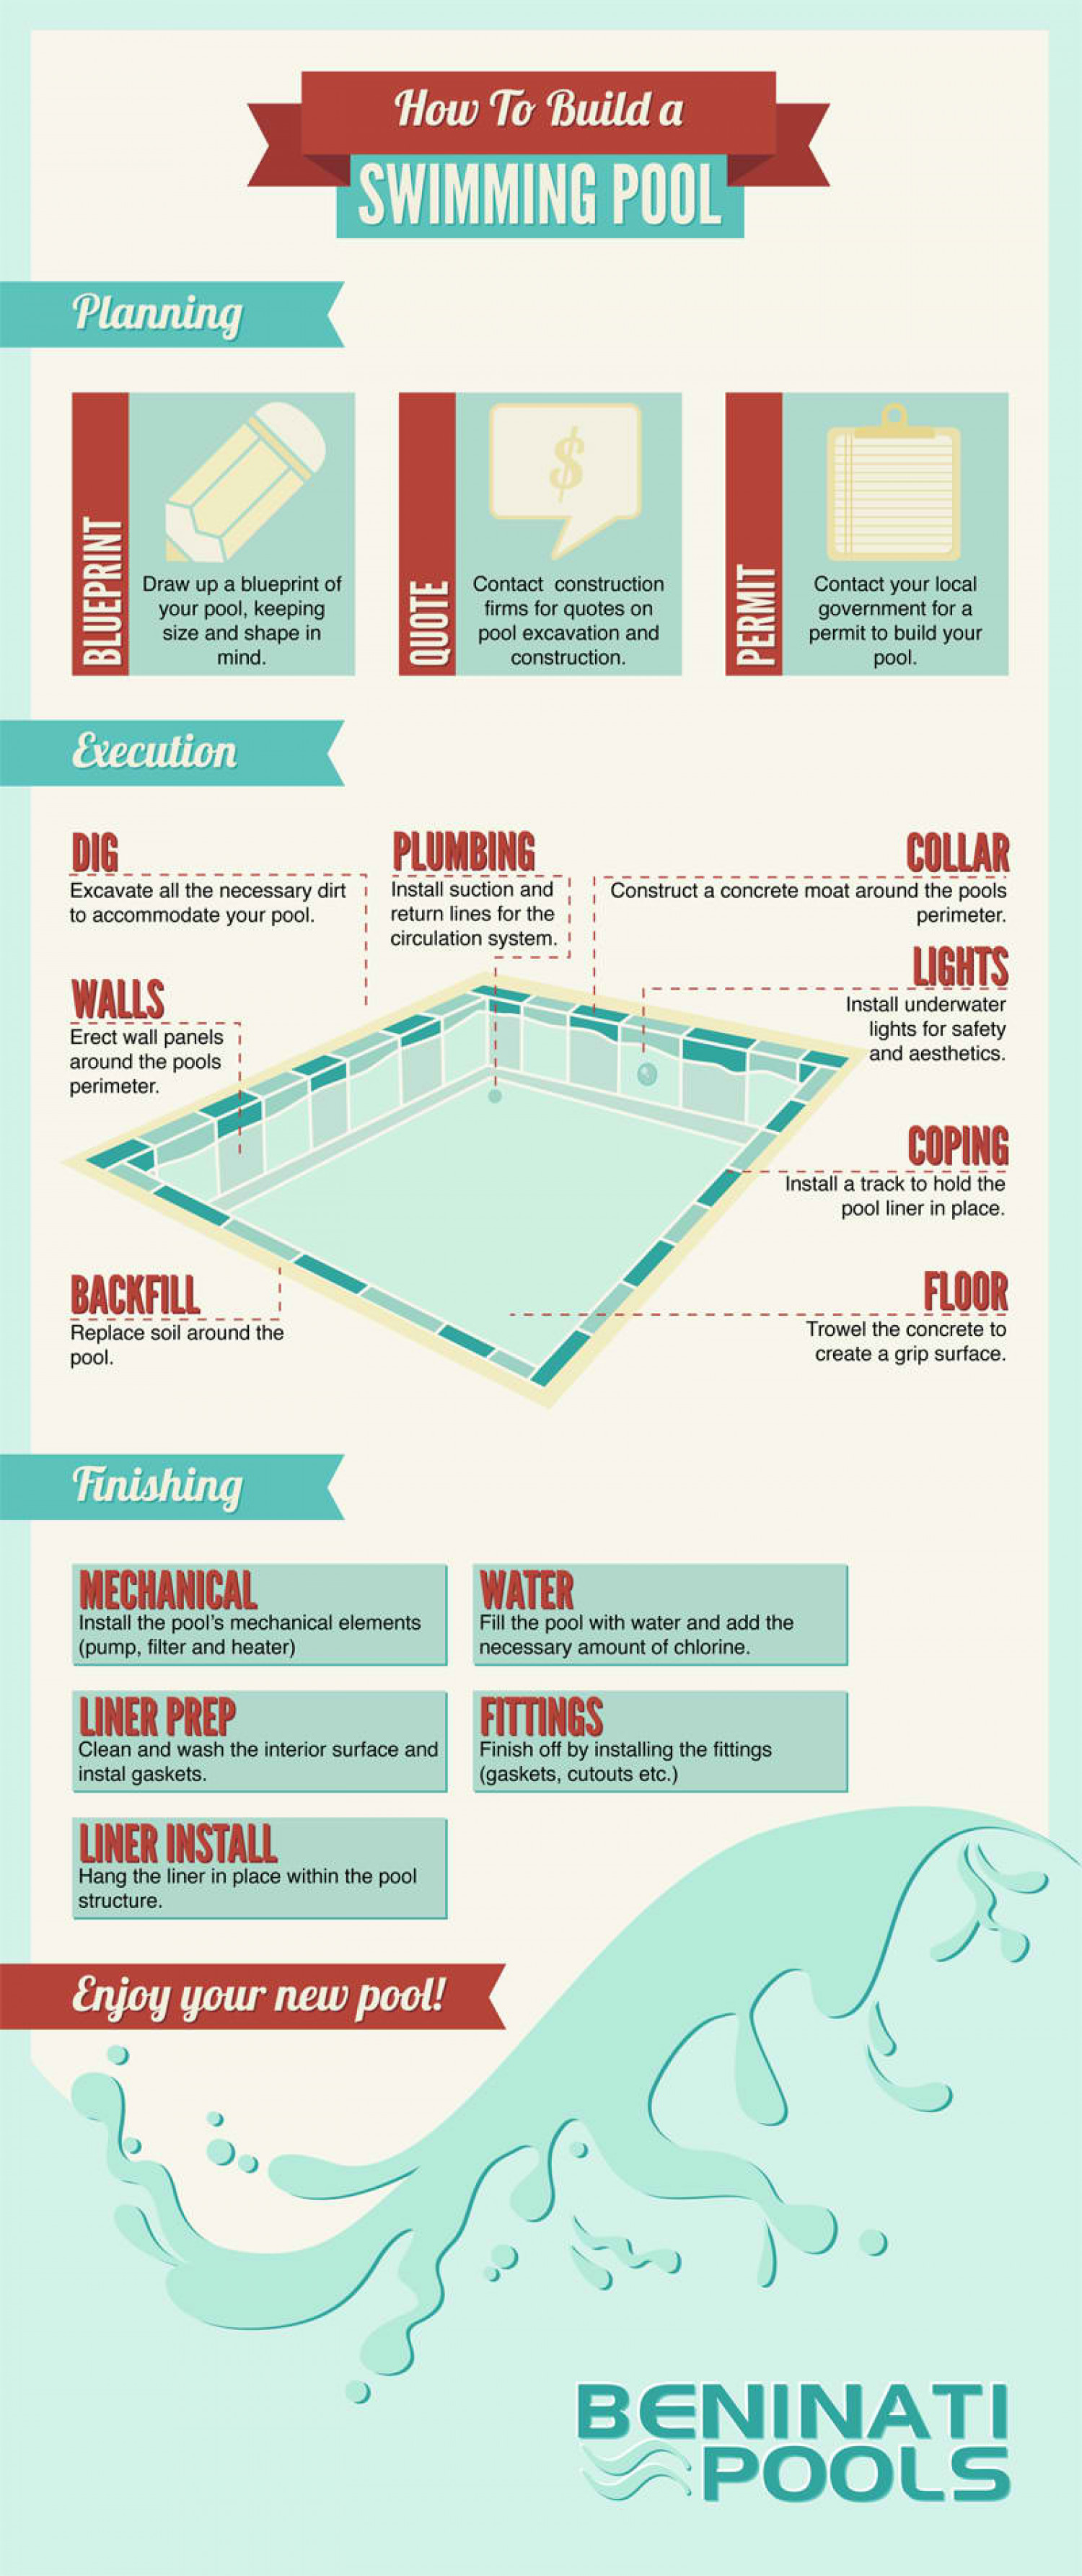 Pool Safety Drowning Accidents And How To Prevent Them